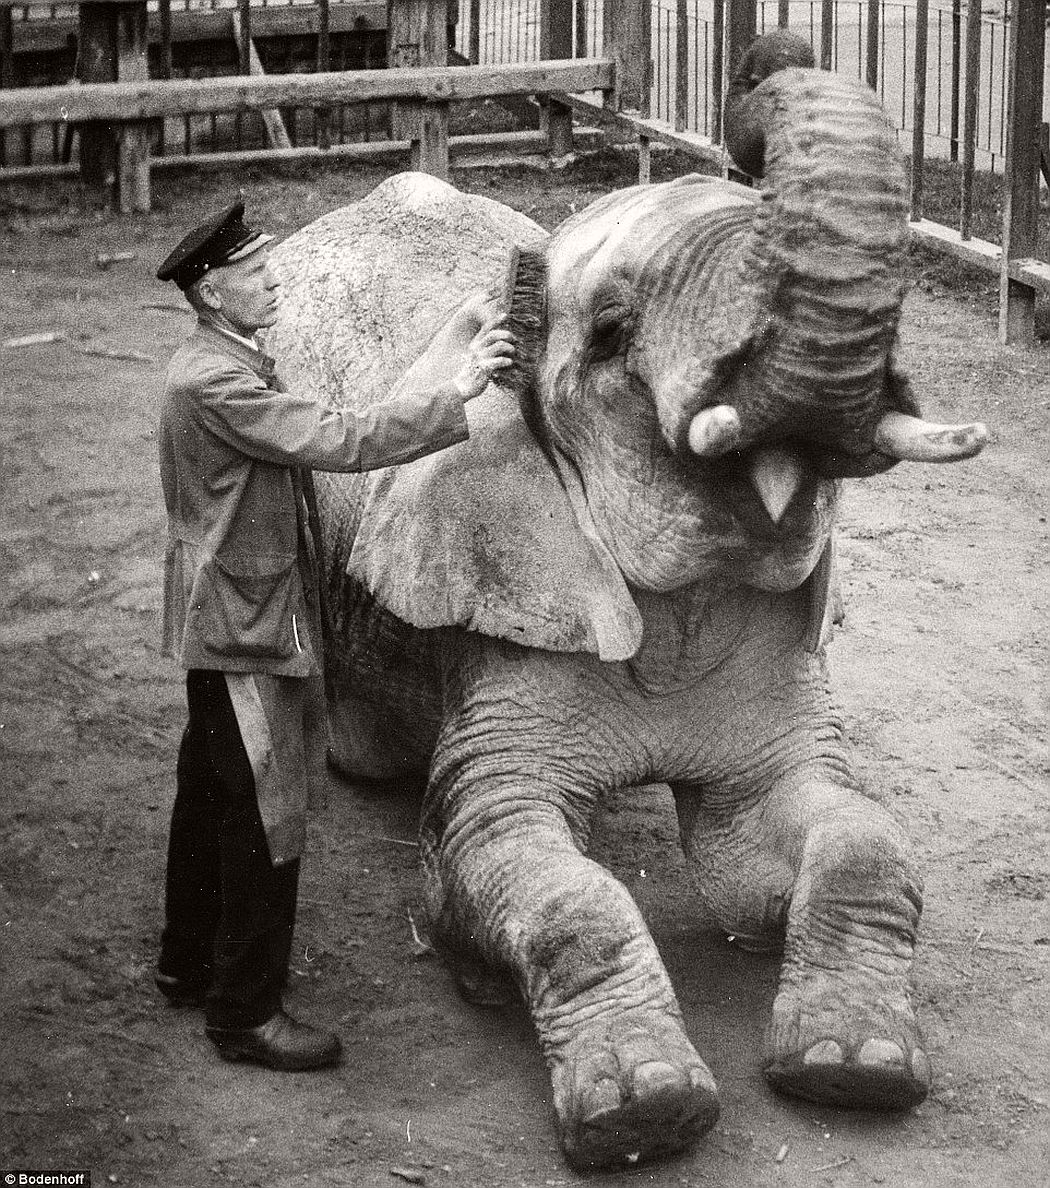 A elephant seemed to be enjoying cleaning